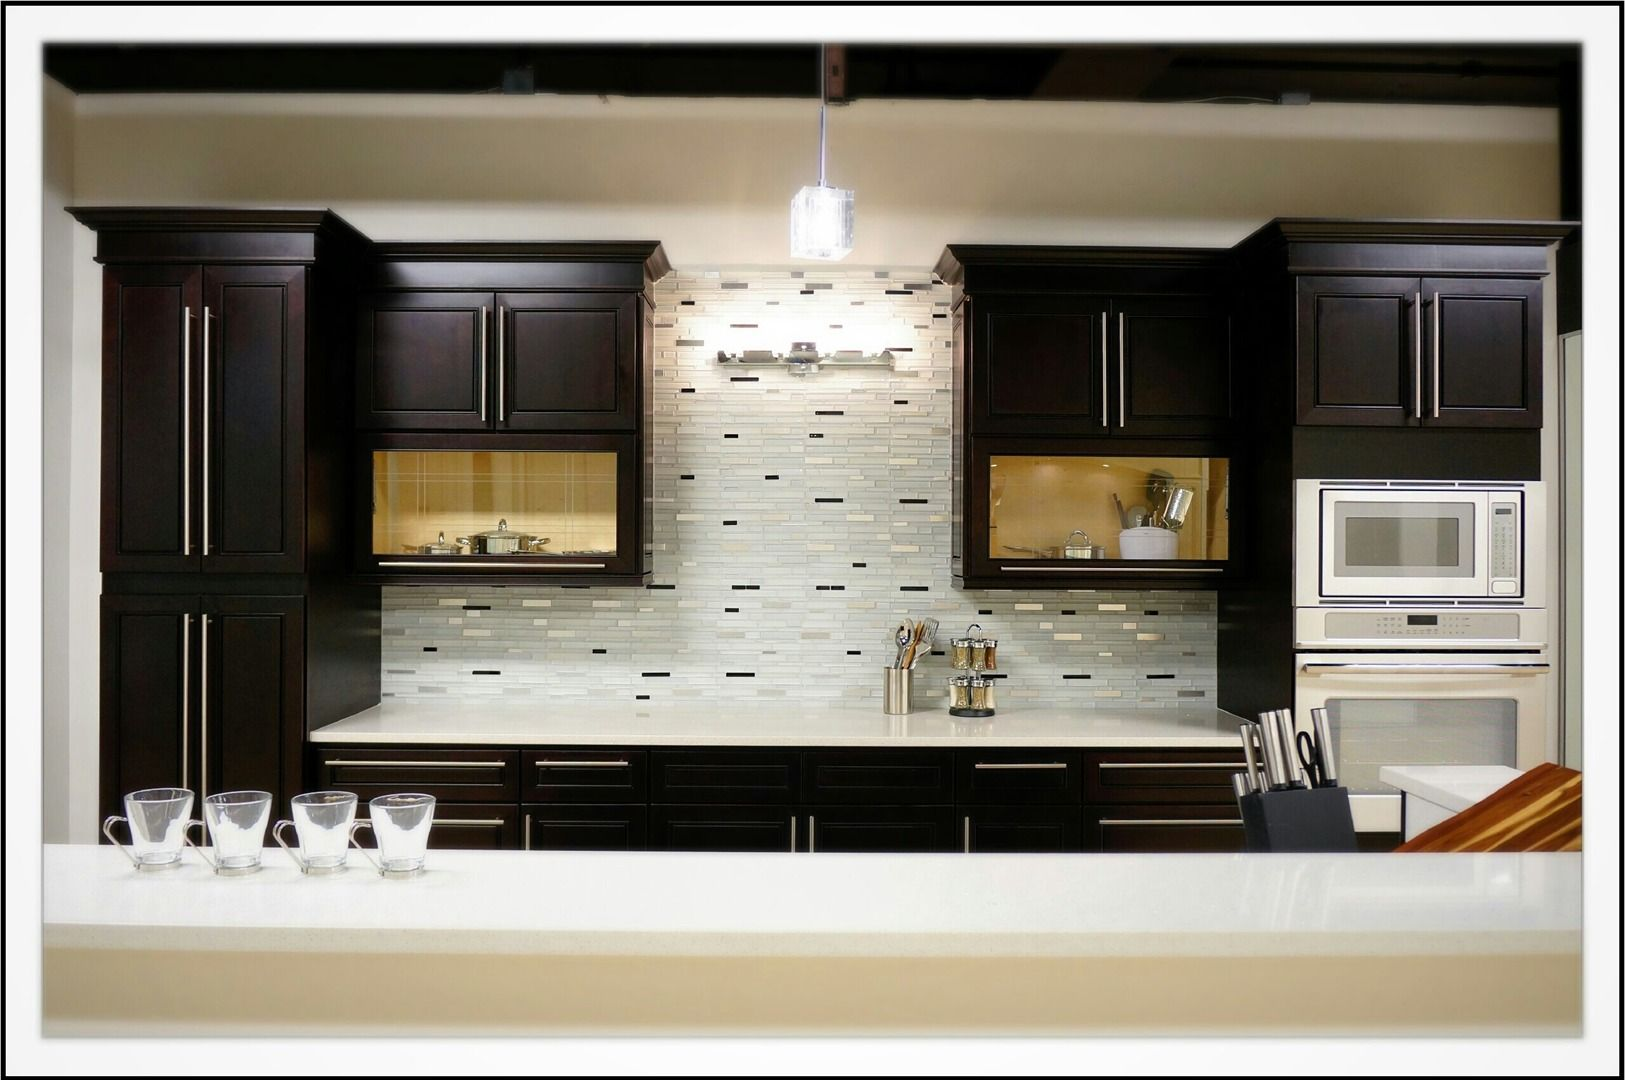 Cardinal Espresso Cabinets In Chandler Az Affordable Cabinets Buy Kitchen Cabinets Affordable Kitchen Cabinets